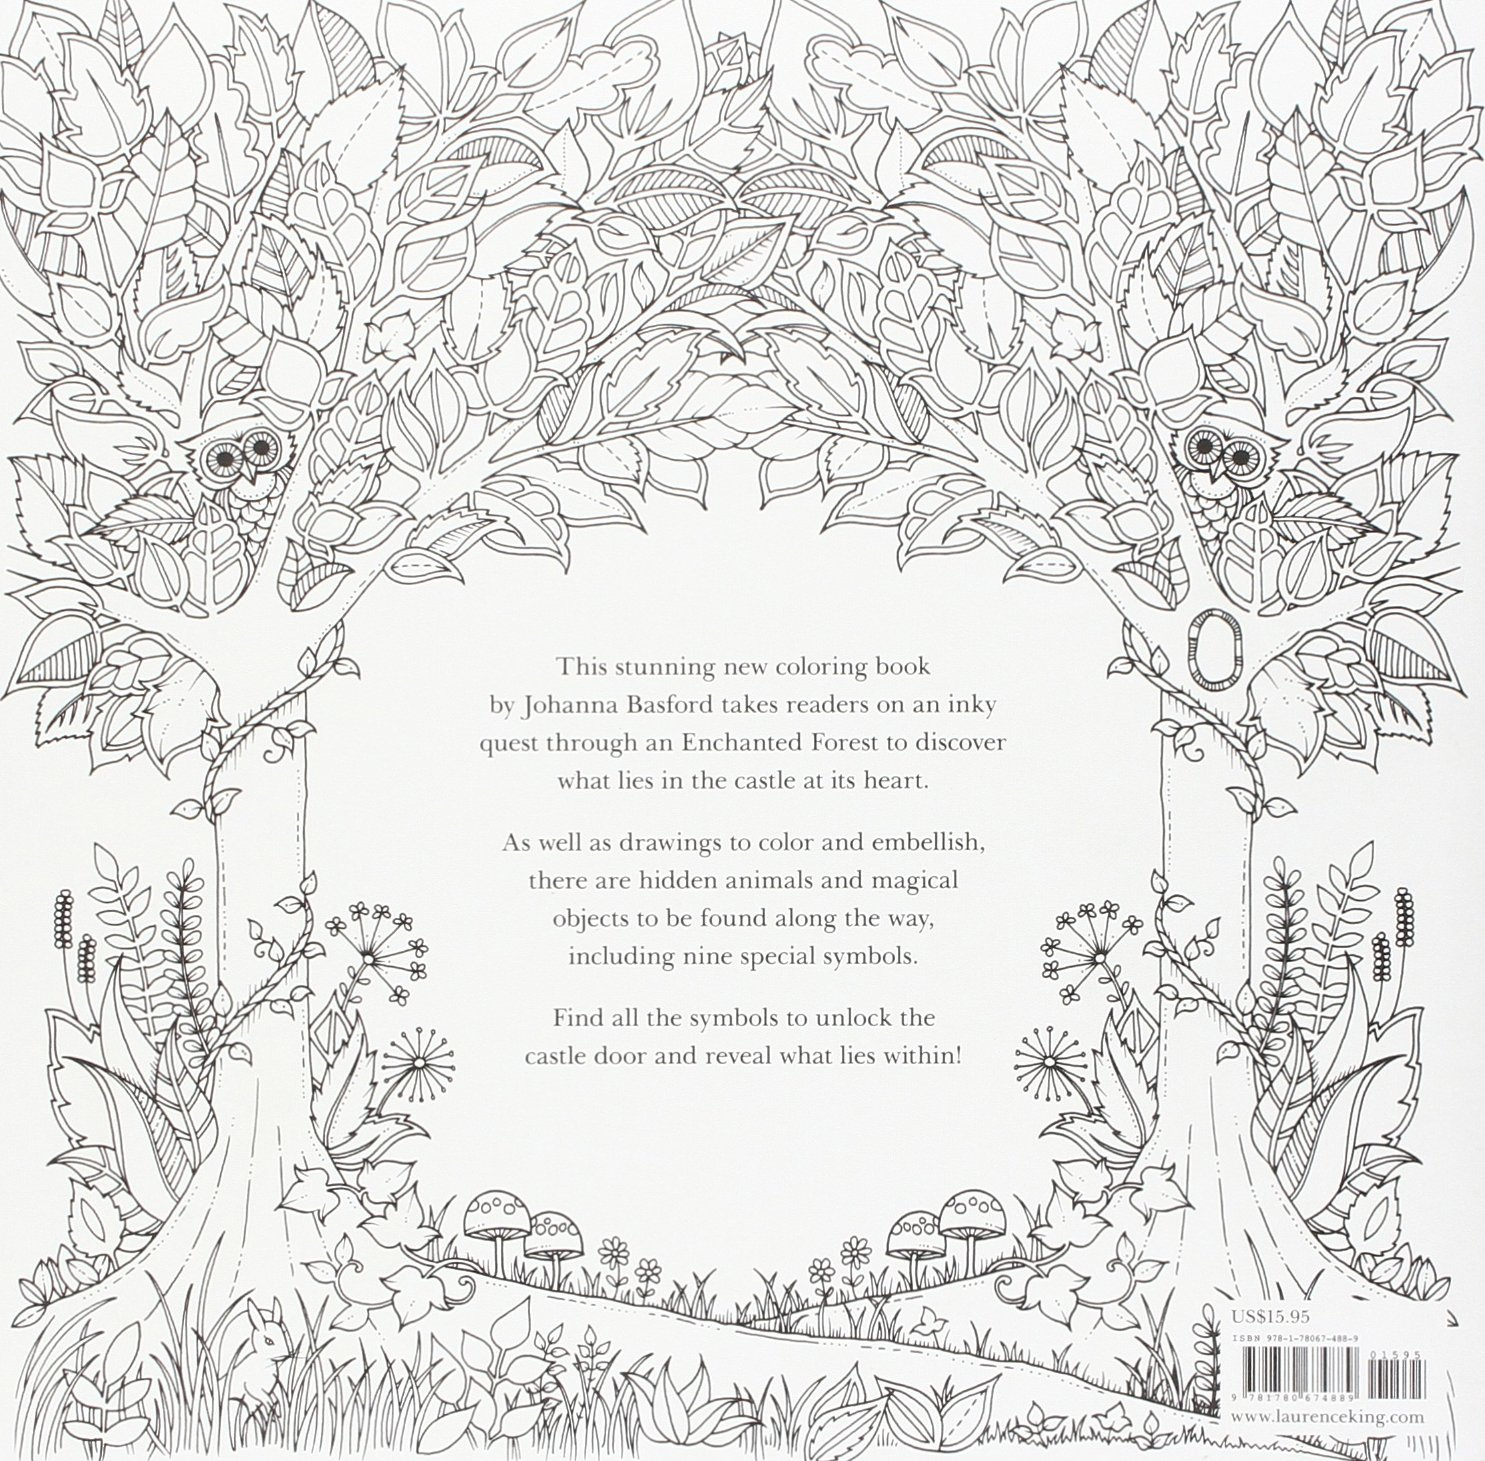 Enchanted Forest An Inky Quest And Coloring Book Activity Books Mindfulness And Meditation Illustrated Floral Prints Amazon Ca Basford Johanna Books